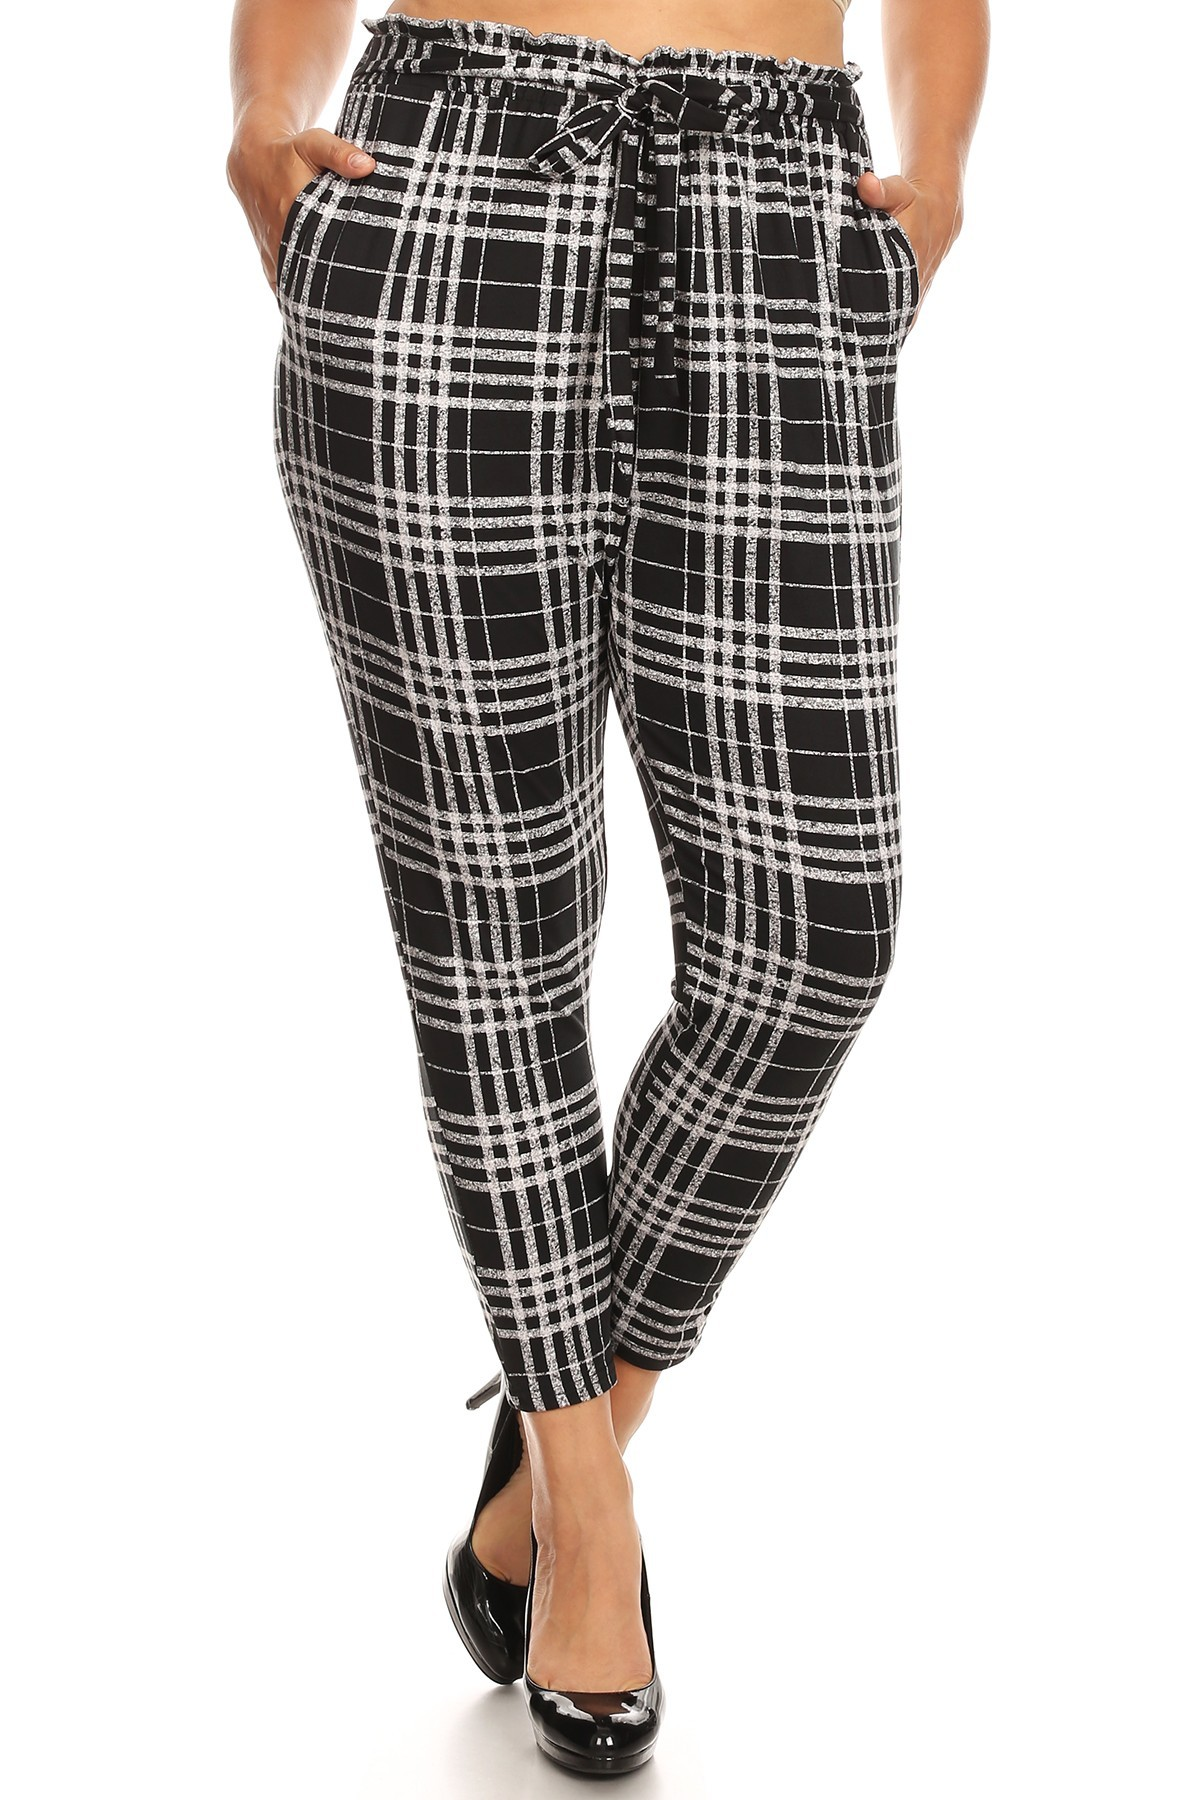 PLUS BLACK/GREY PLAID PRINT PAPER BAG WAIST PANTS#X8PNT03-01